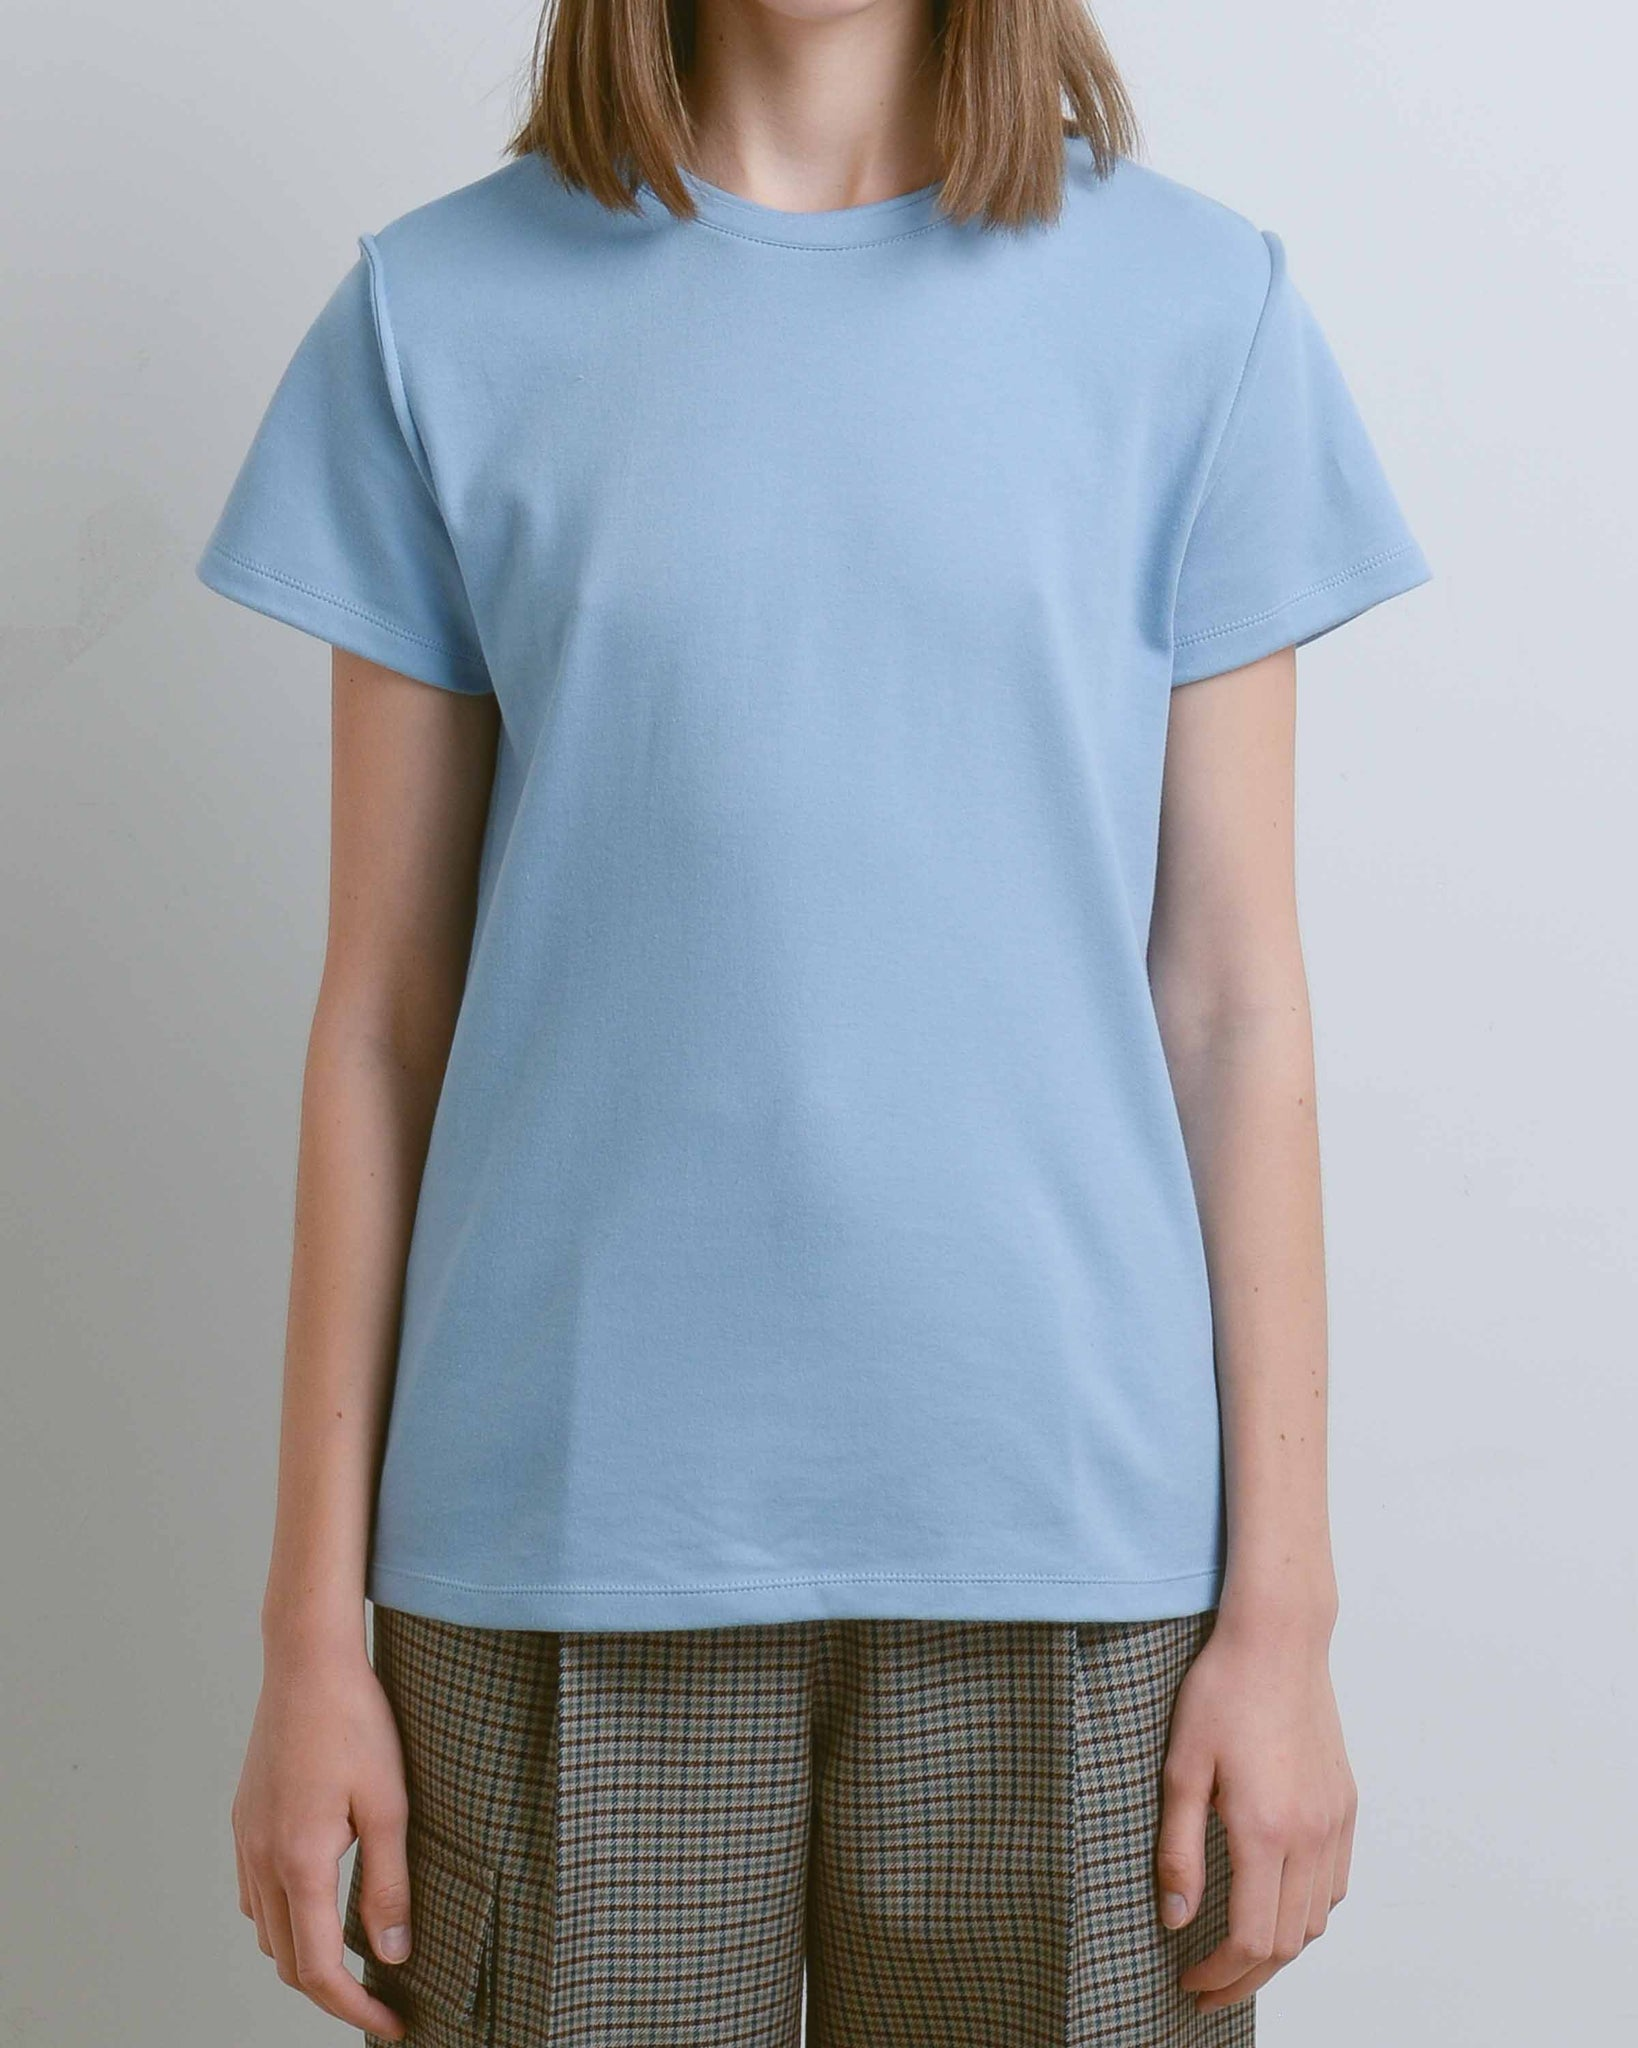 Light Blue Tee Without Text